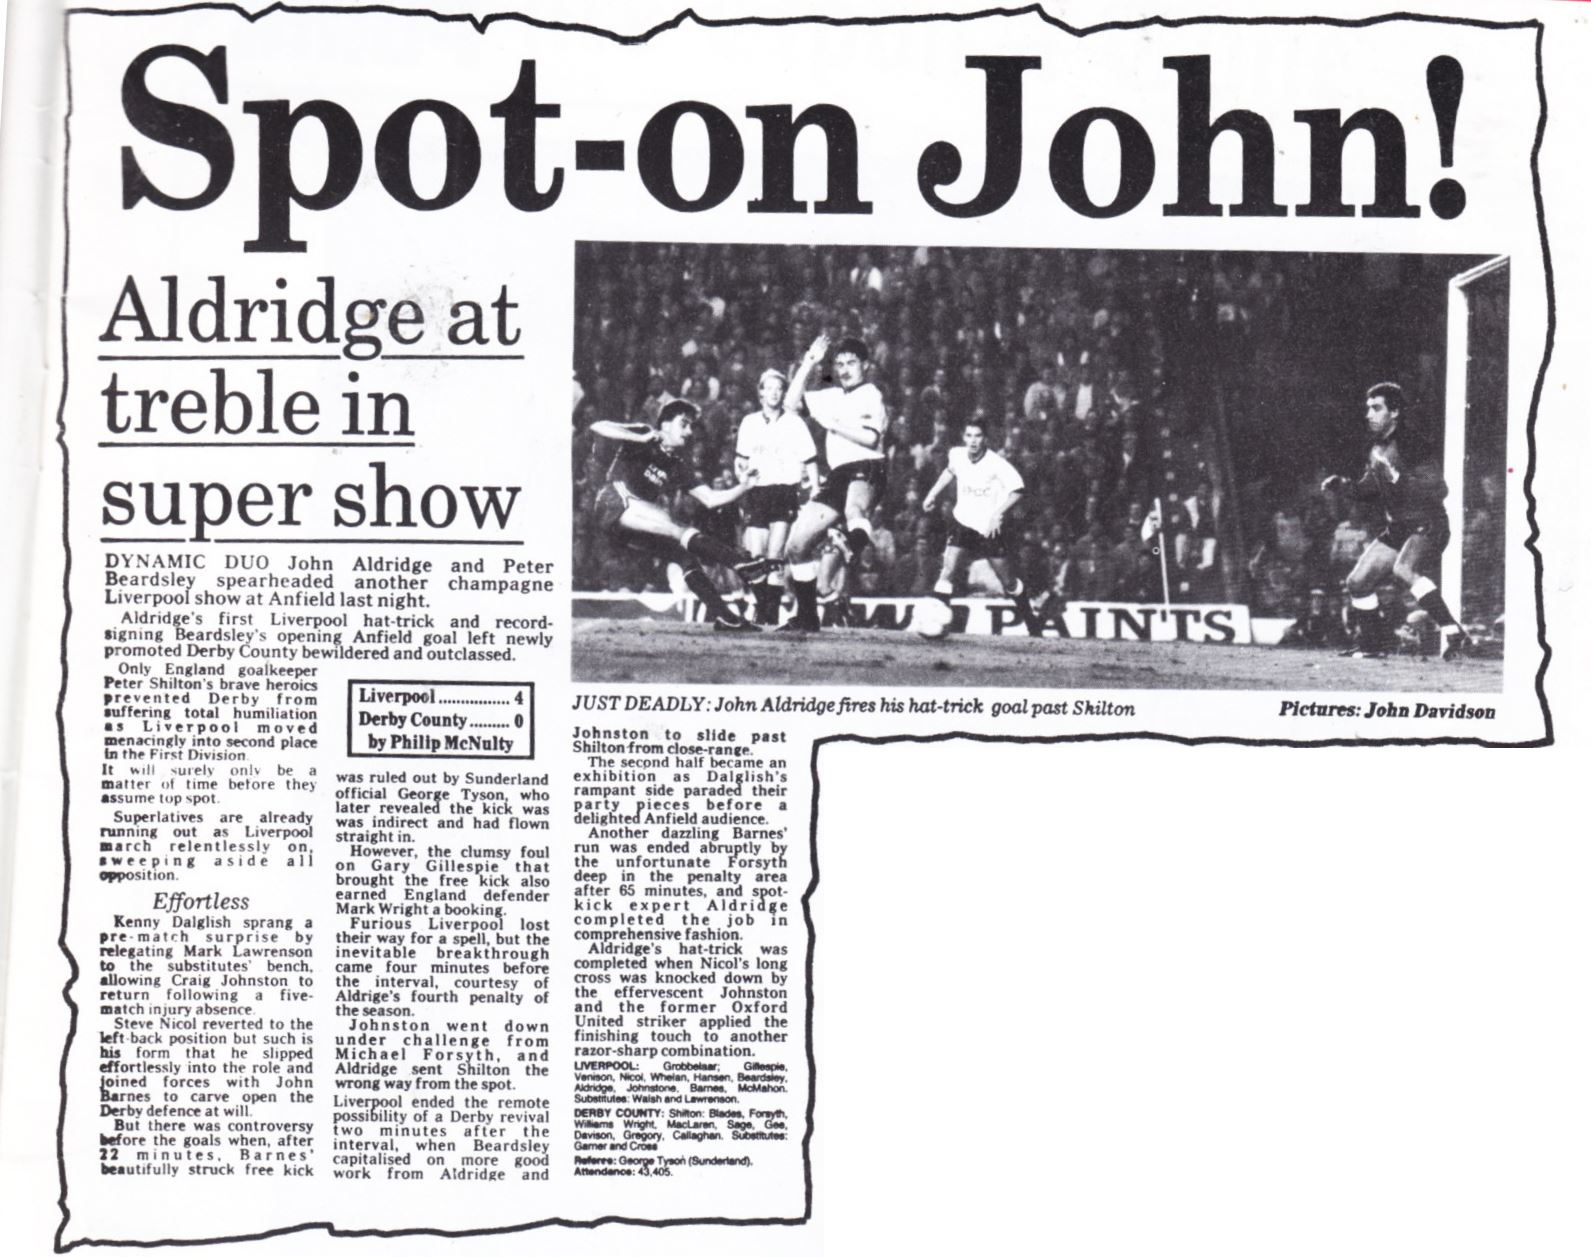 Aldridge at the treble! - 29 September 1987